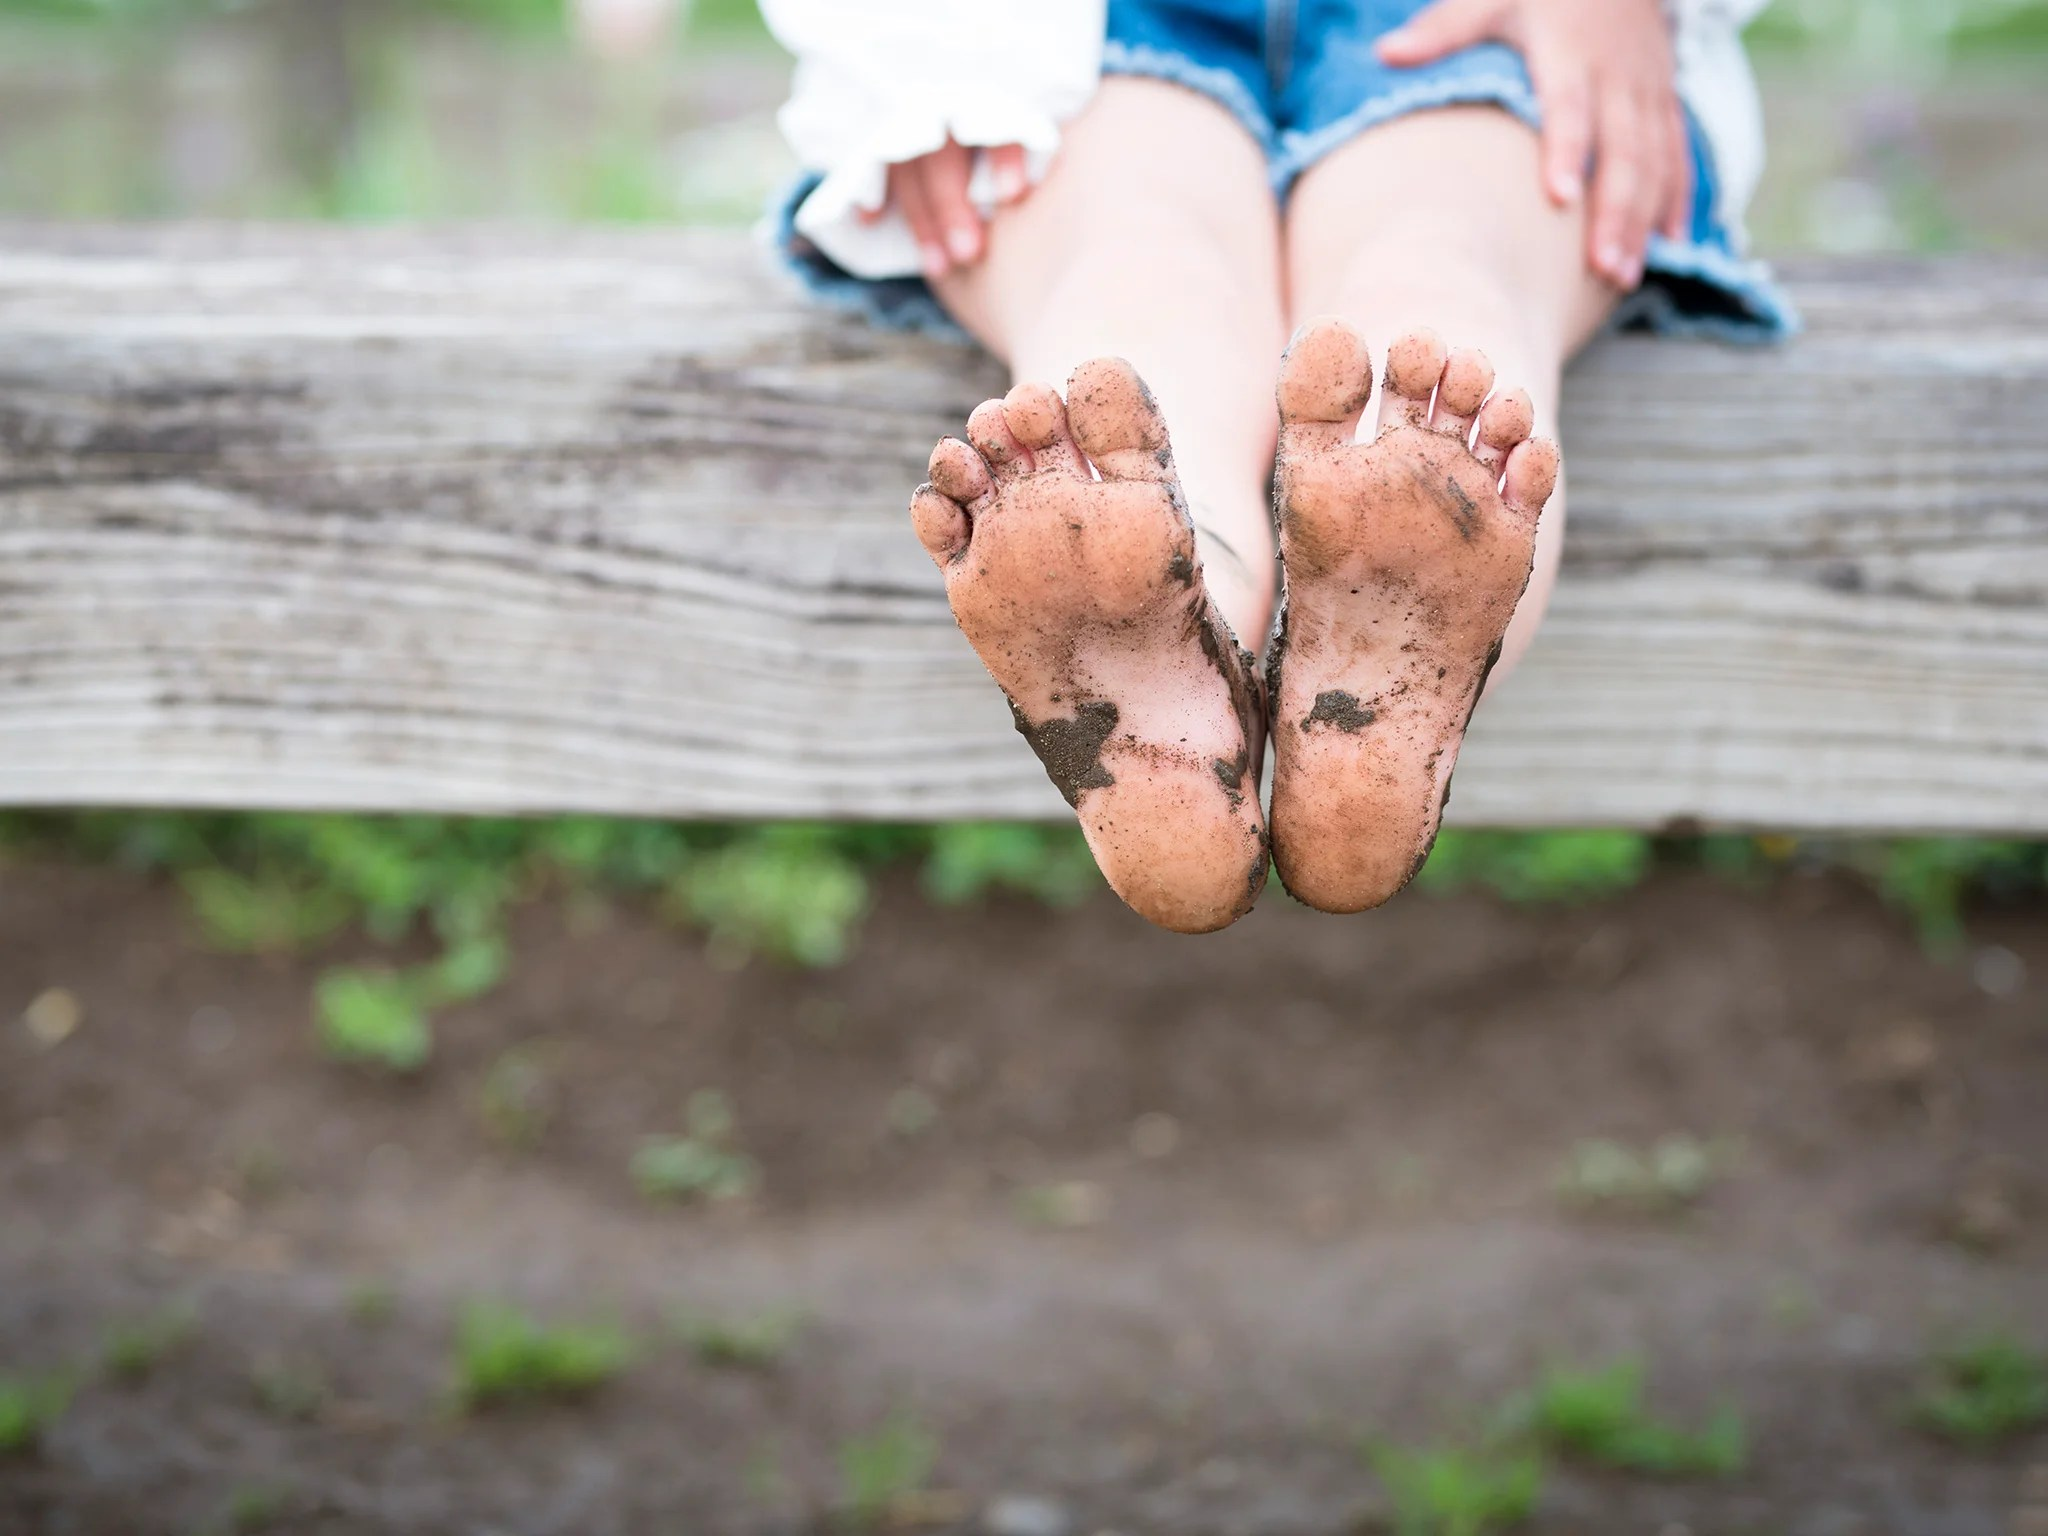 why going barefoot encourages